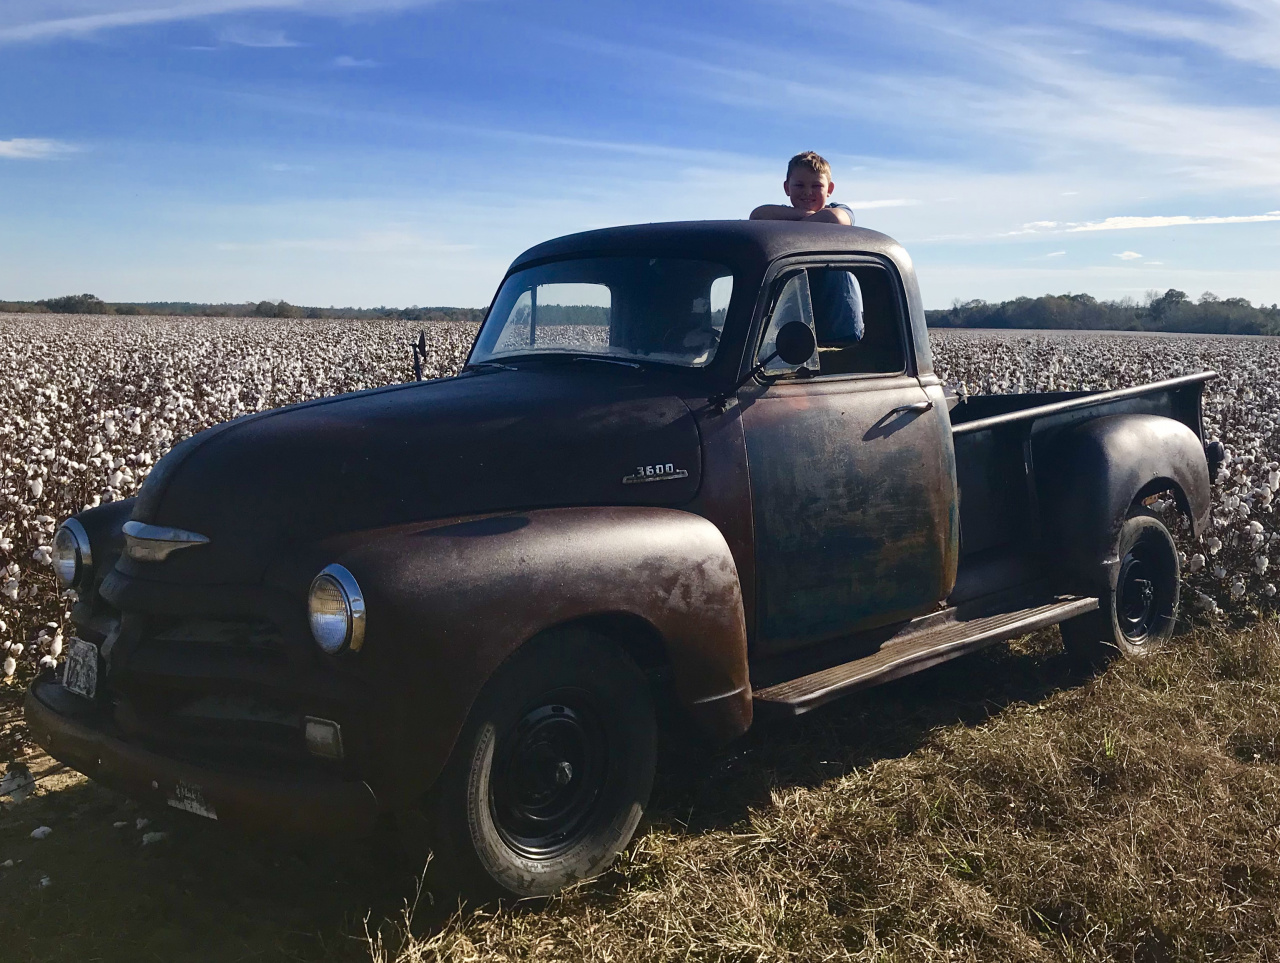 Take your fall  pics by the cotton and old truck-43fdafc7-f2eb-430d-ab93-606904e0bf2e-jpg